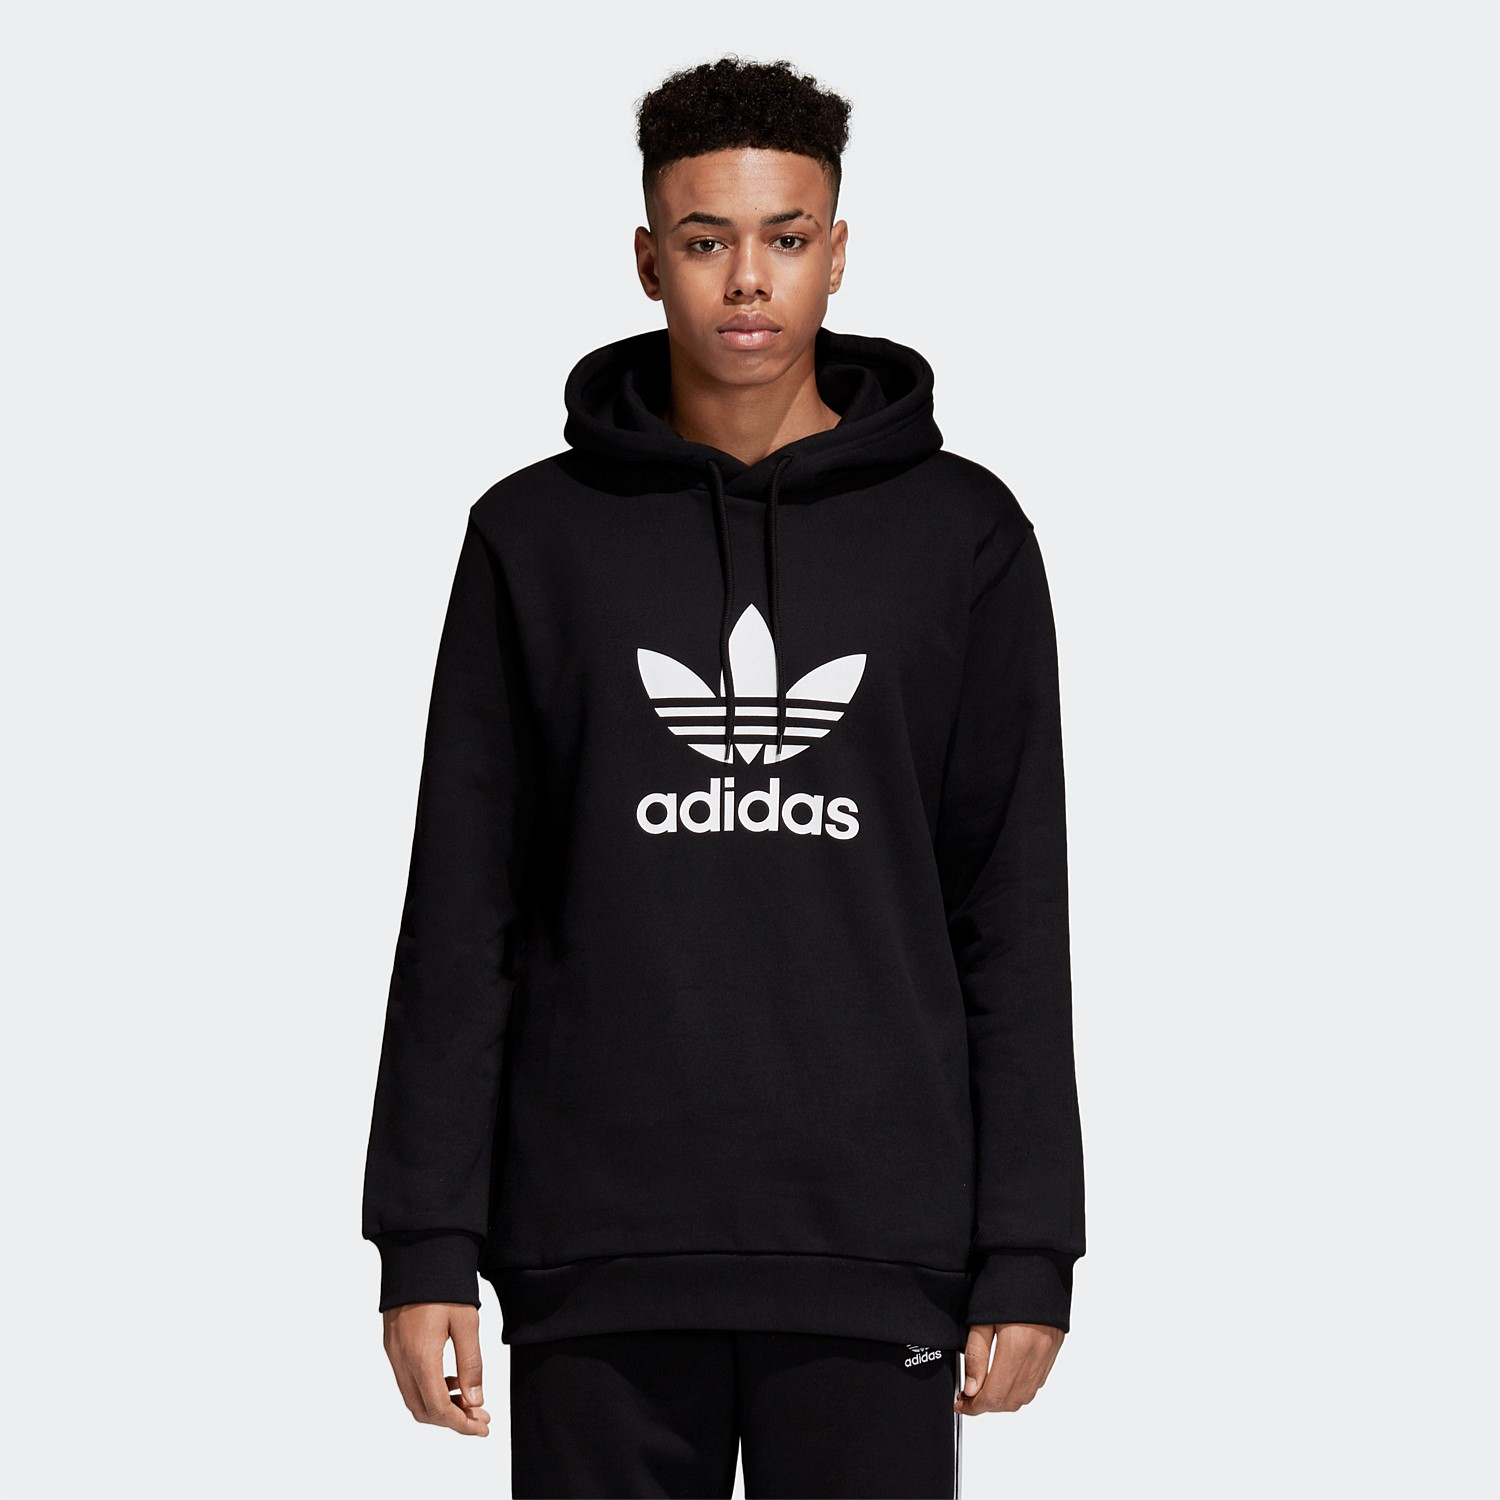 045abb5a adidas Originals | Shop adidas Originals Clothing, Footwear and Accessories  Online | Stirling Sports - Trefoil Hoodie